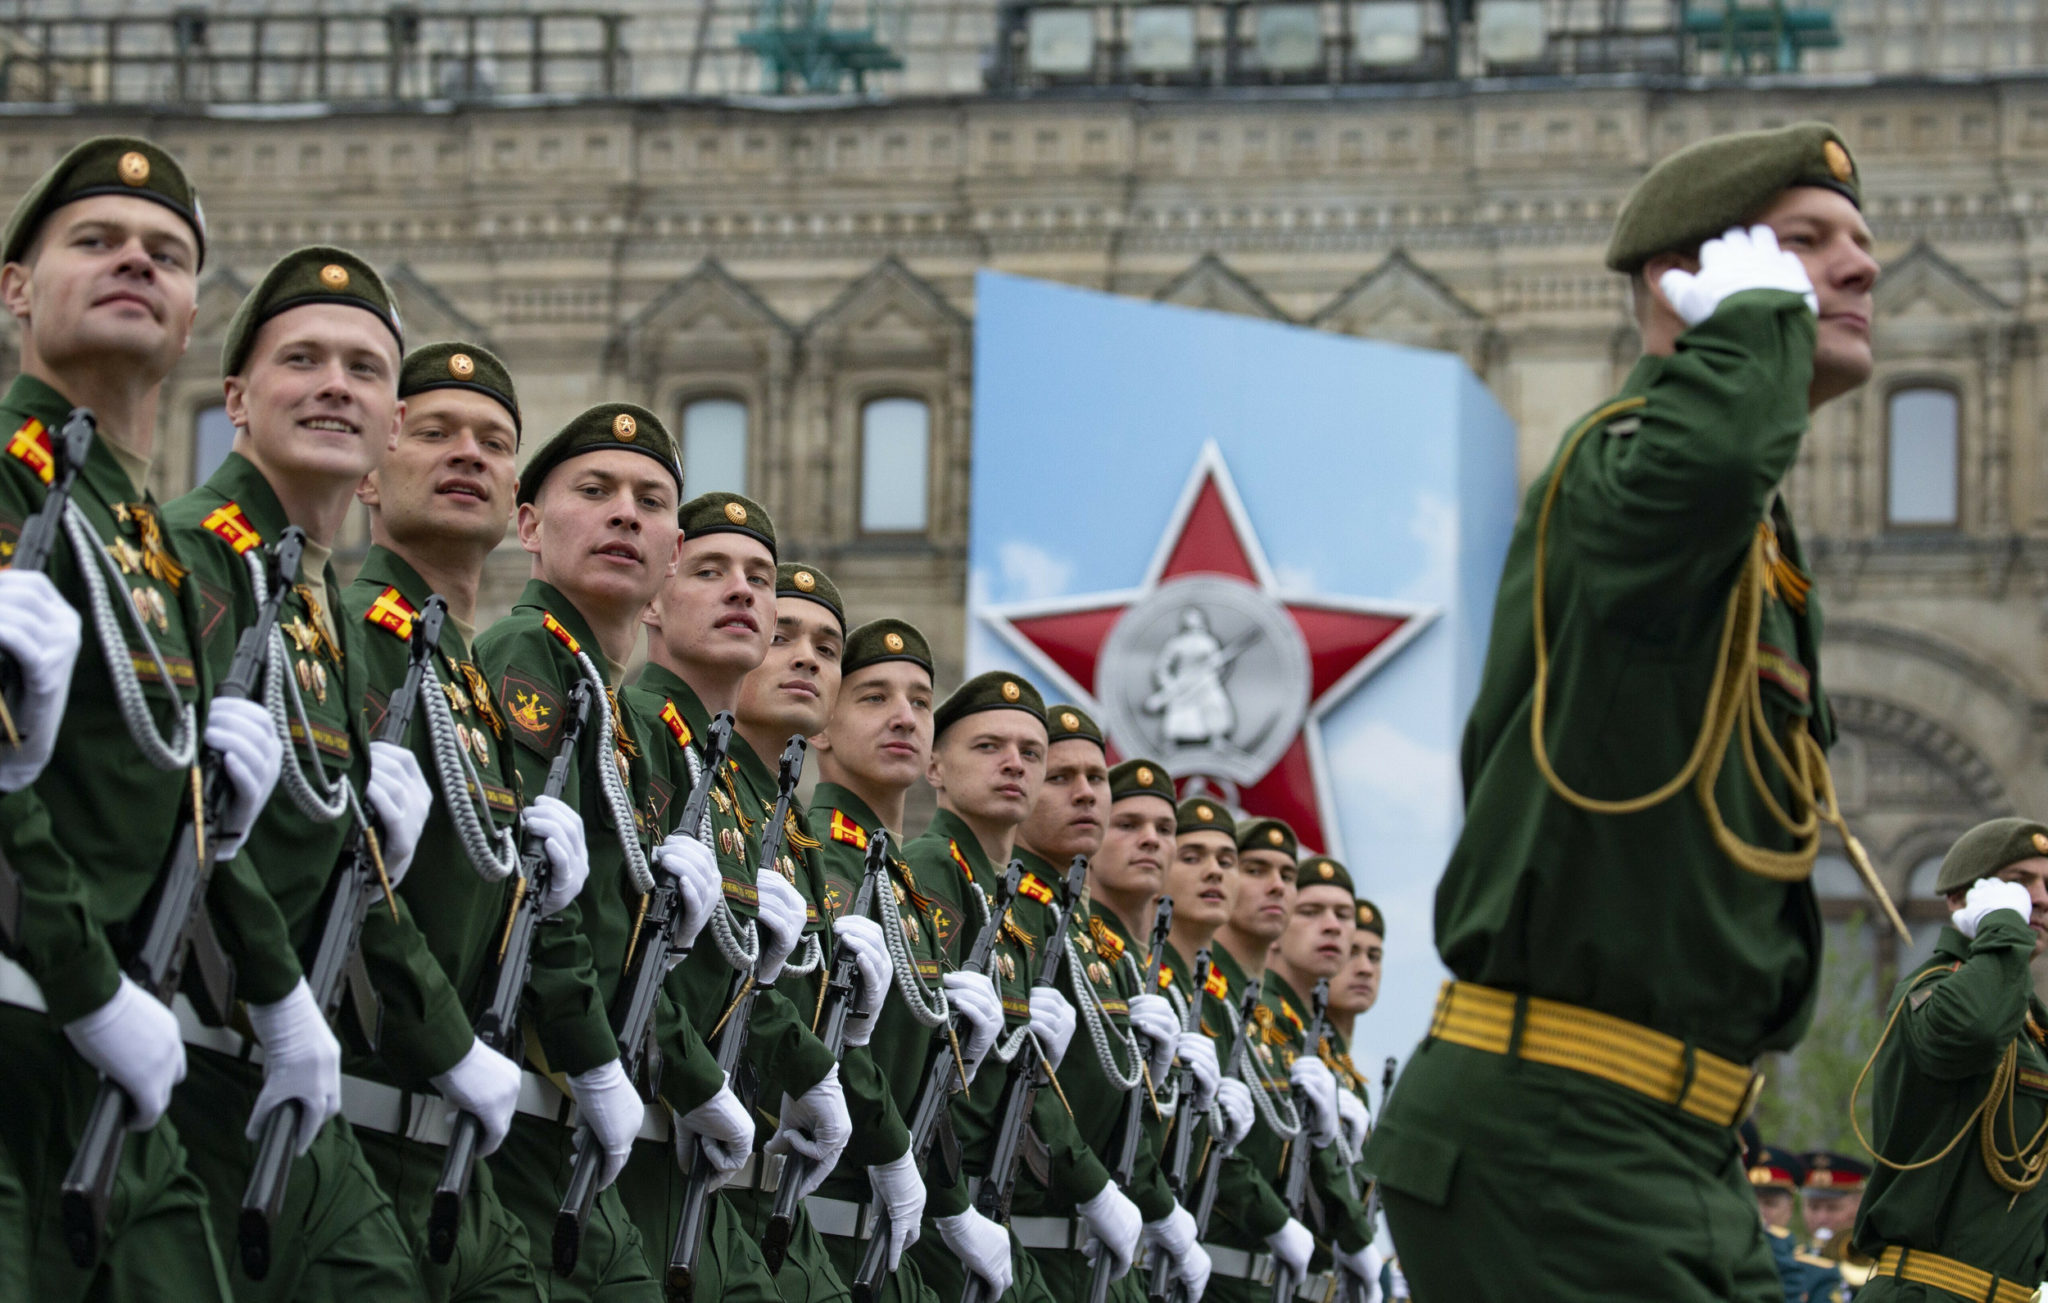 Putin on Victory Day: Russian military to be strengthened